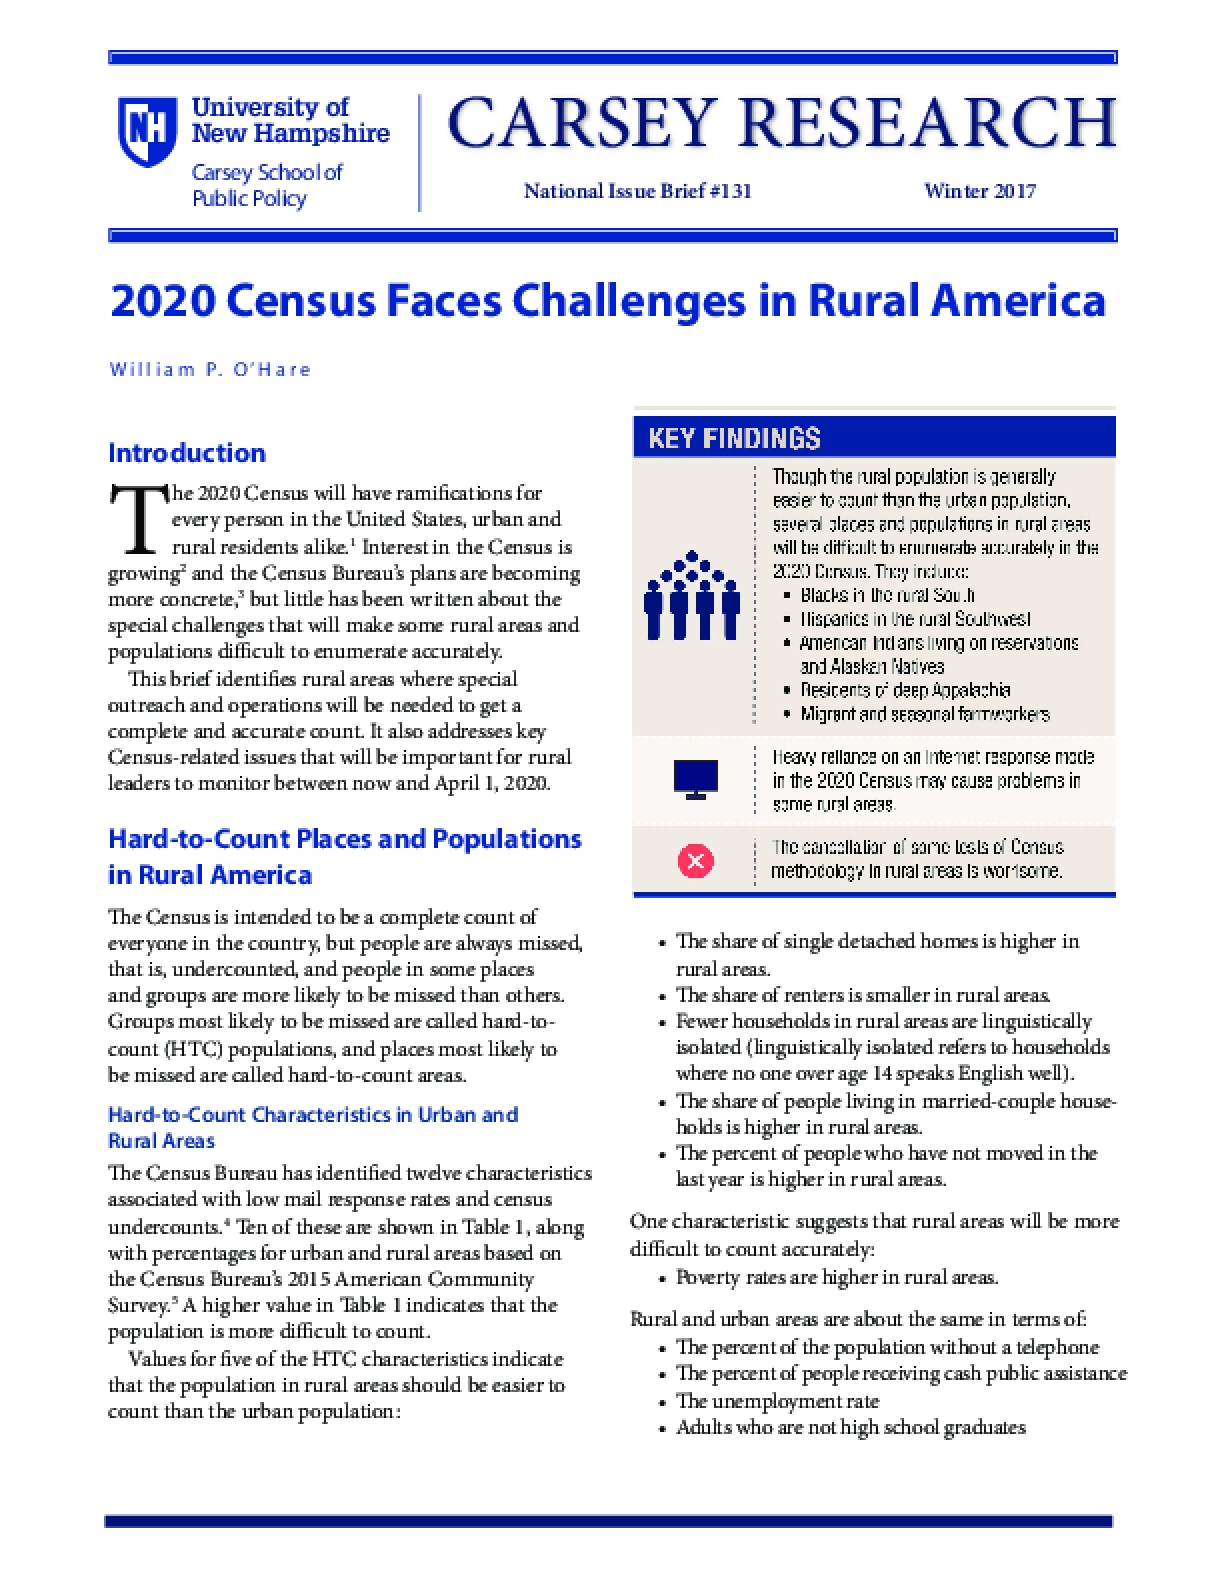 2020 Census Faces Challenges in Rural America